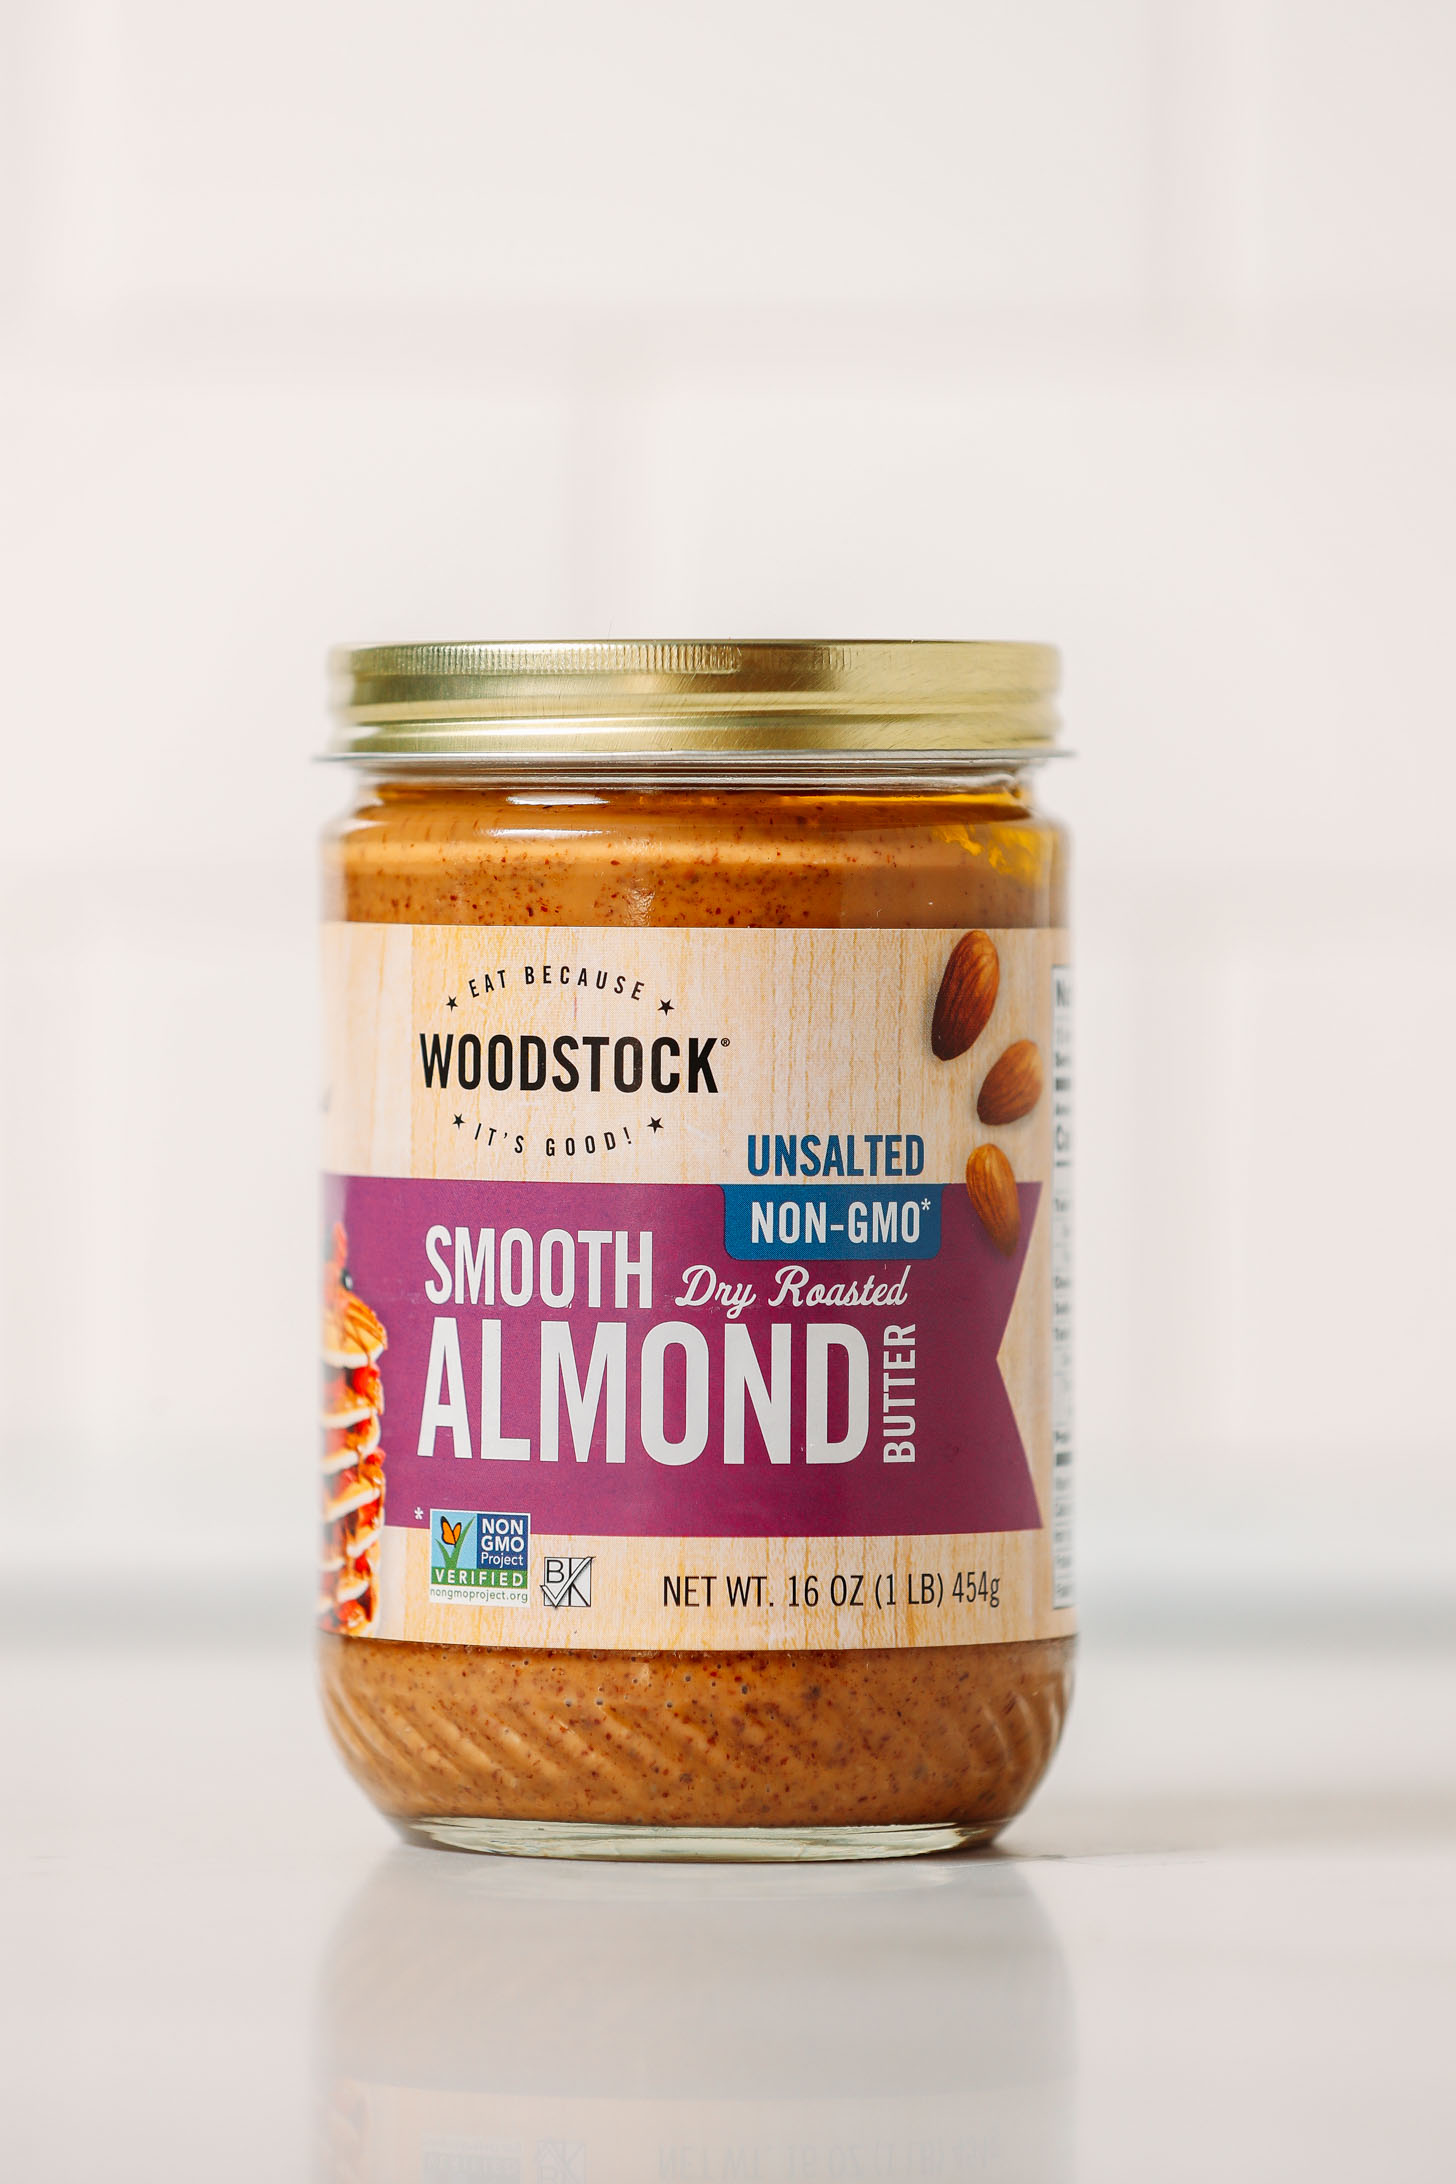 Jar of Woodstock Smooth Almond Butter for our review of the top almond butter brands